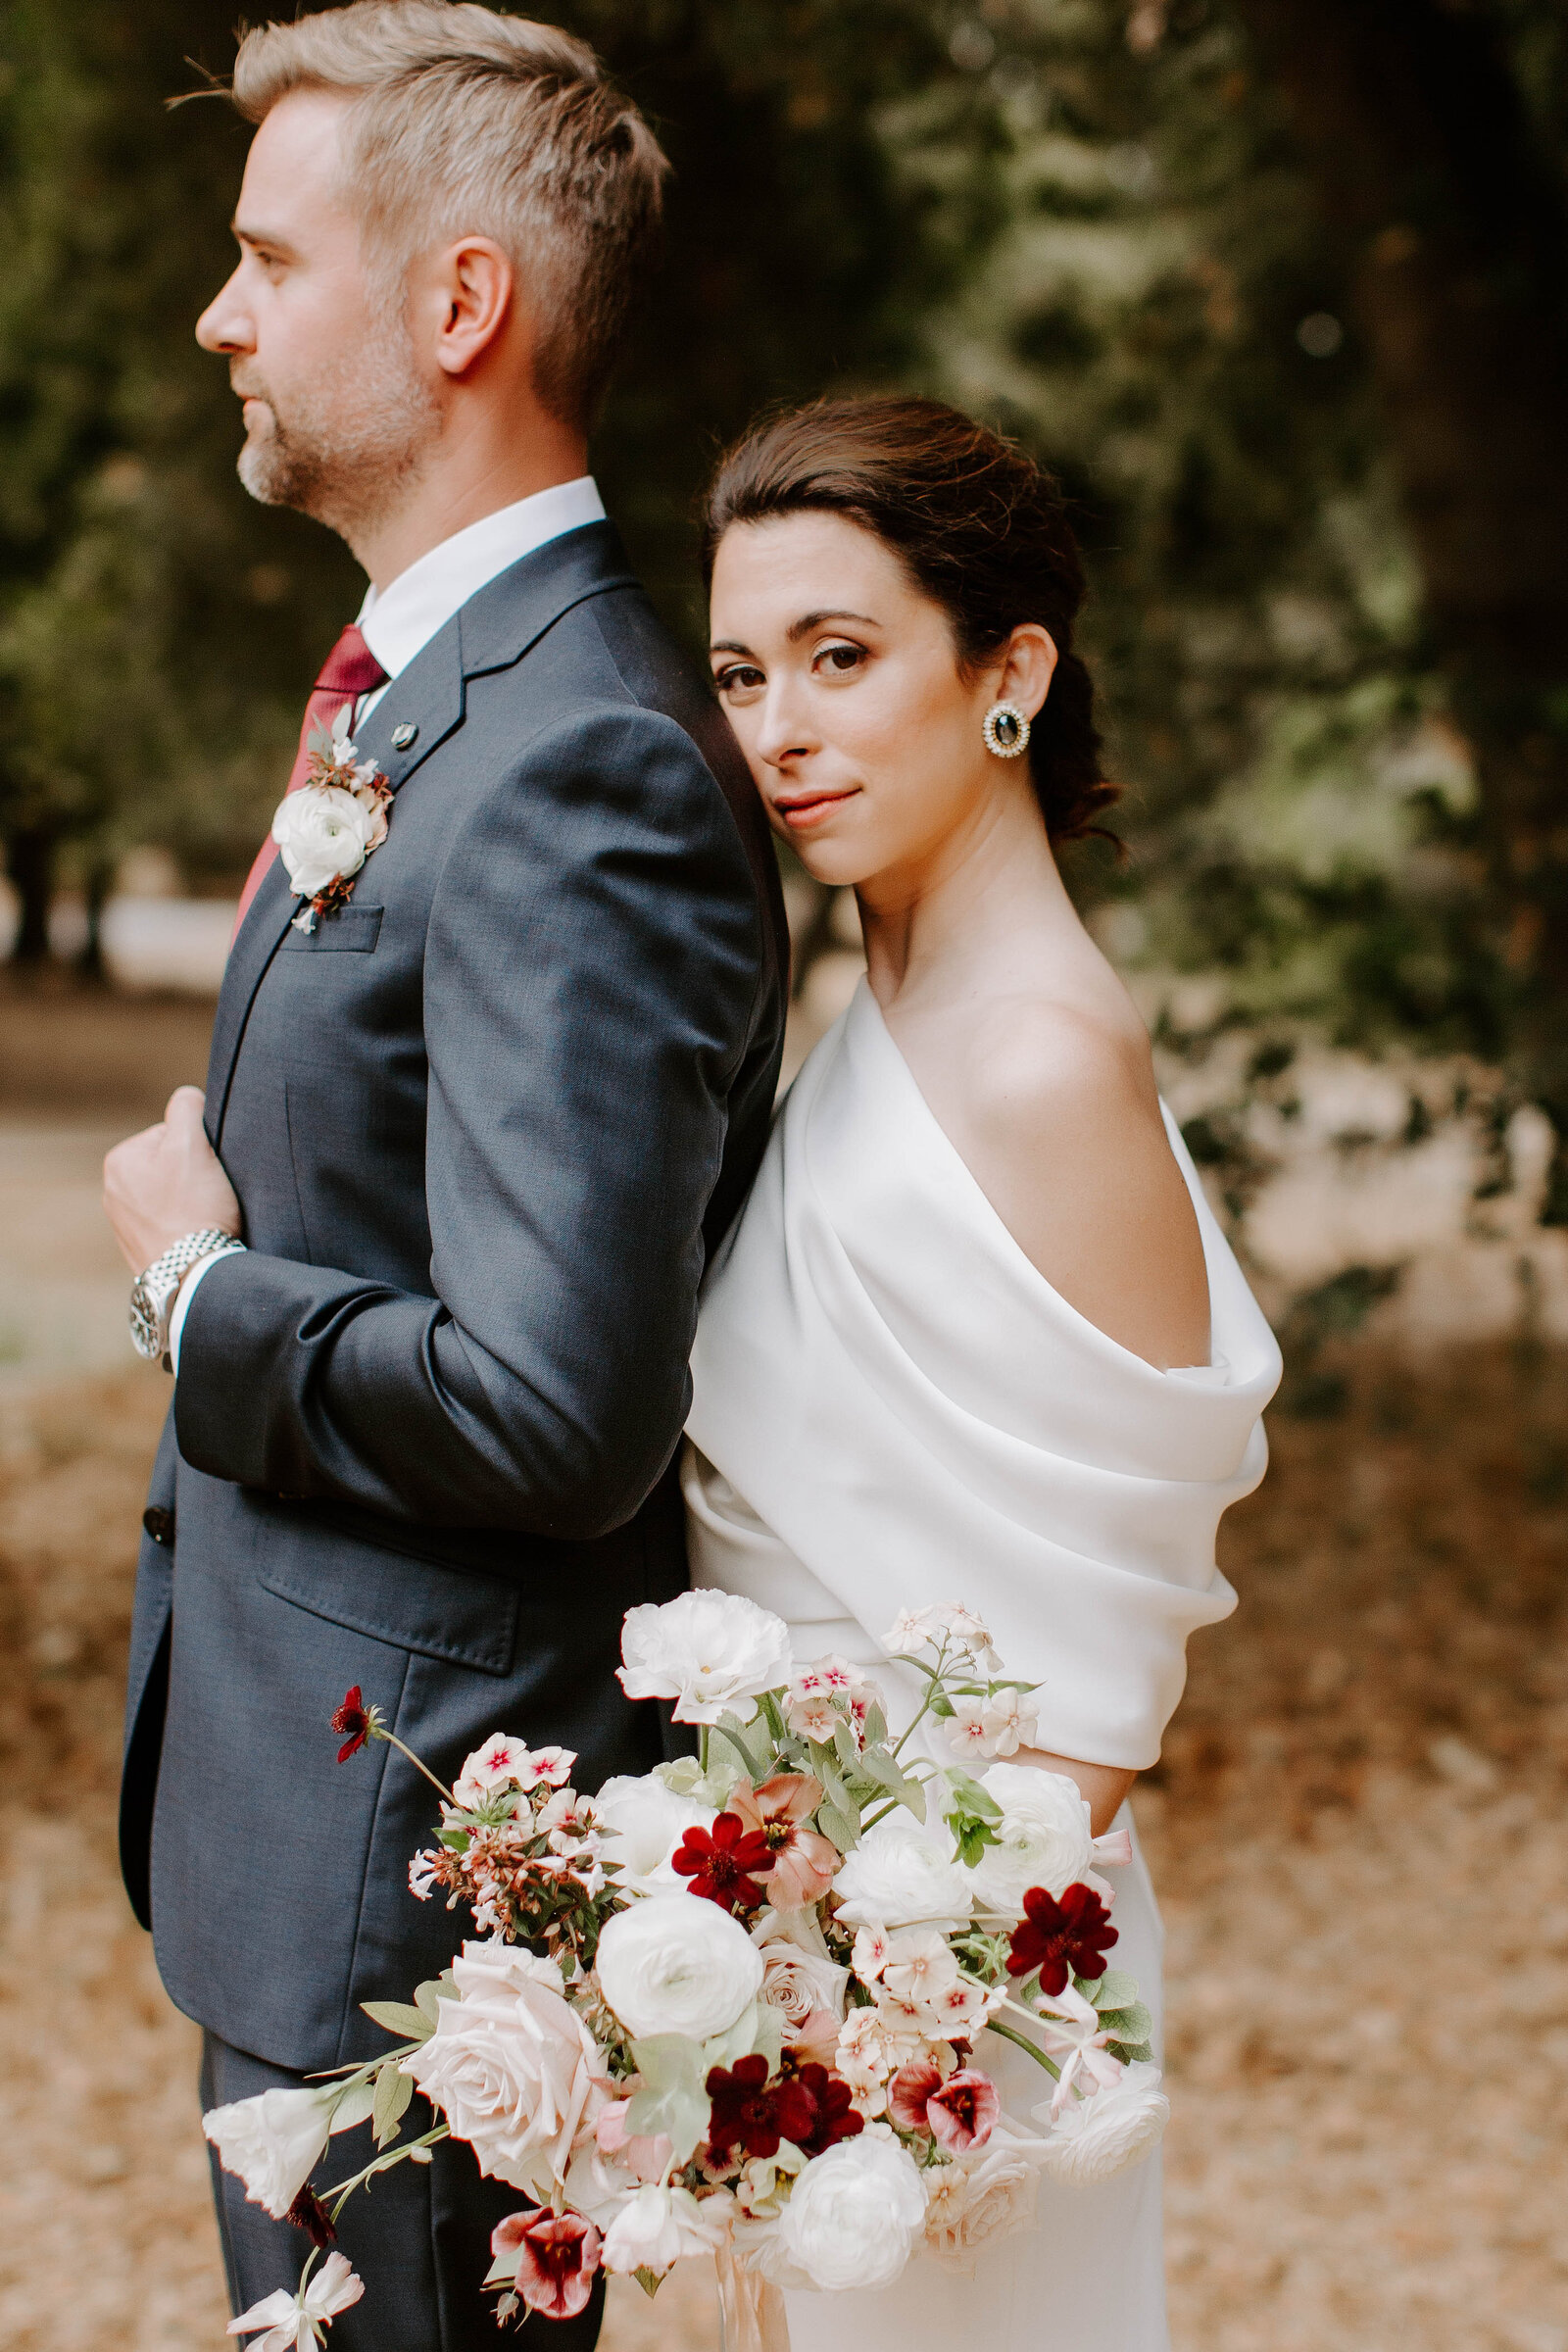 Hannah-Berglund-Photography_Audrey-Roger_Intimate-Wedding-101